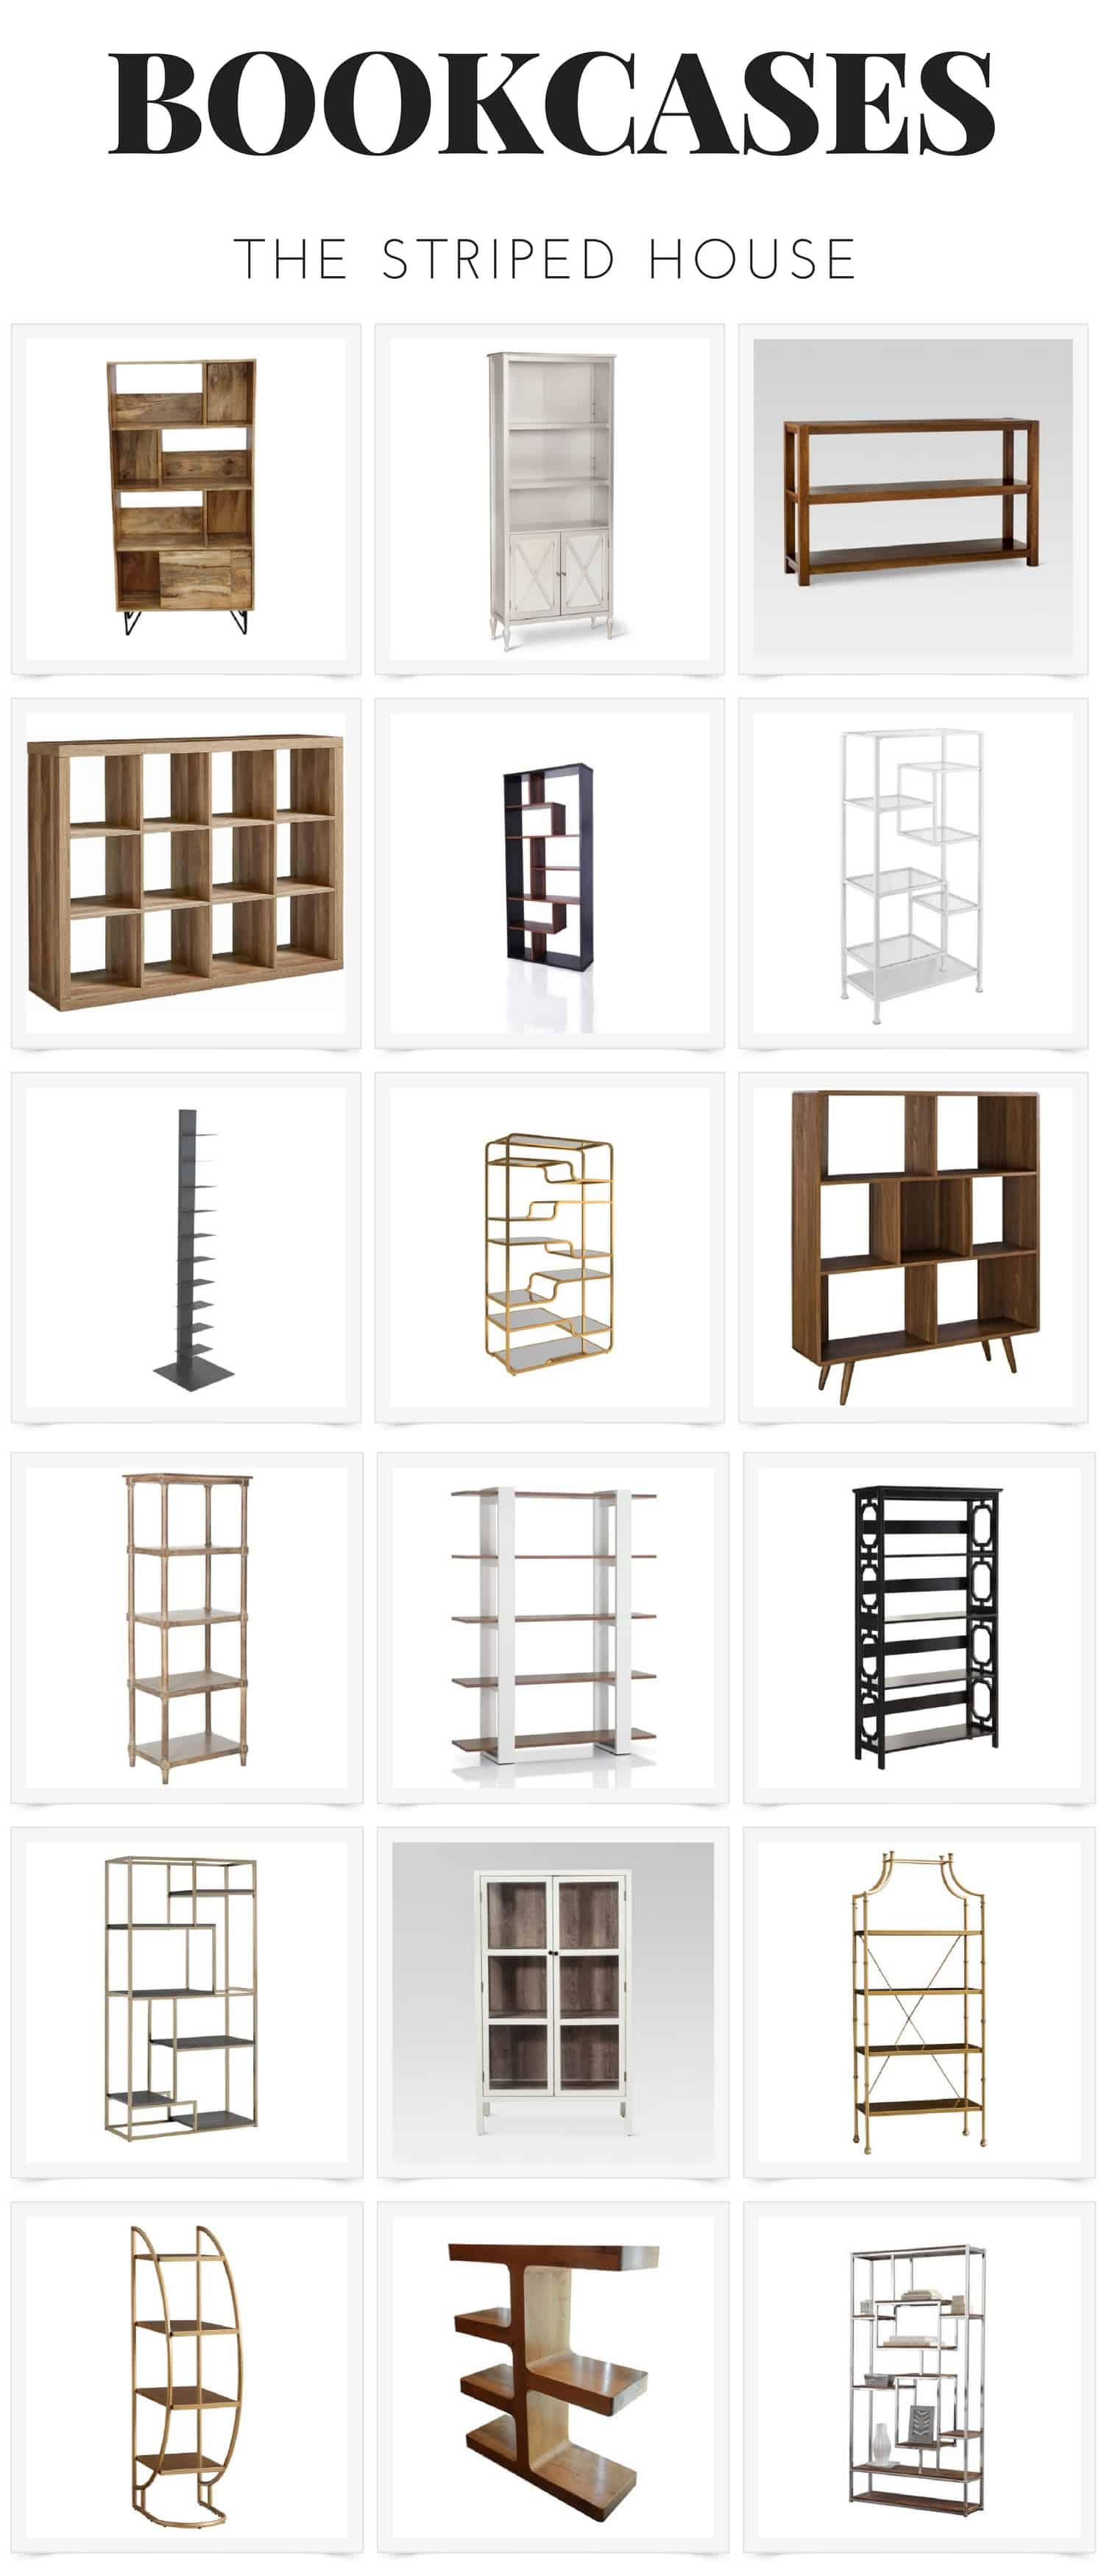 Bookcase Round Up: There is the perfect bookcase for your space.